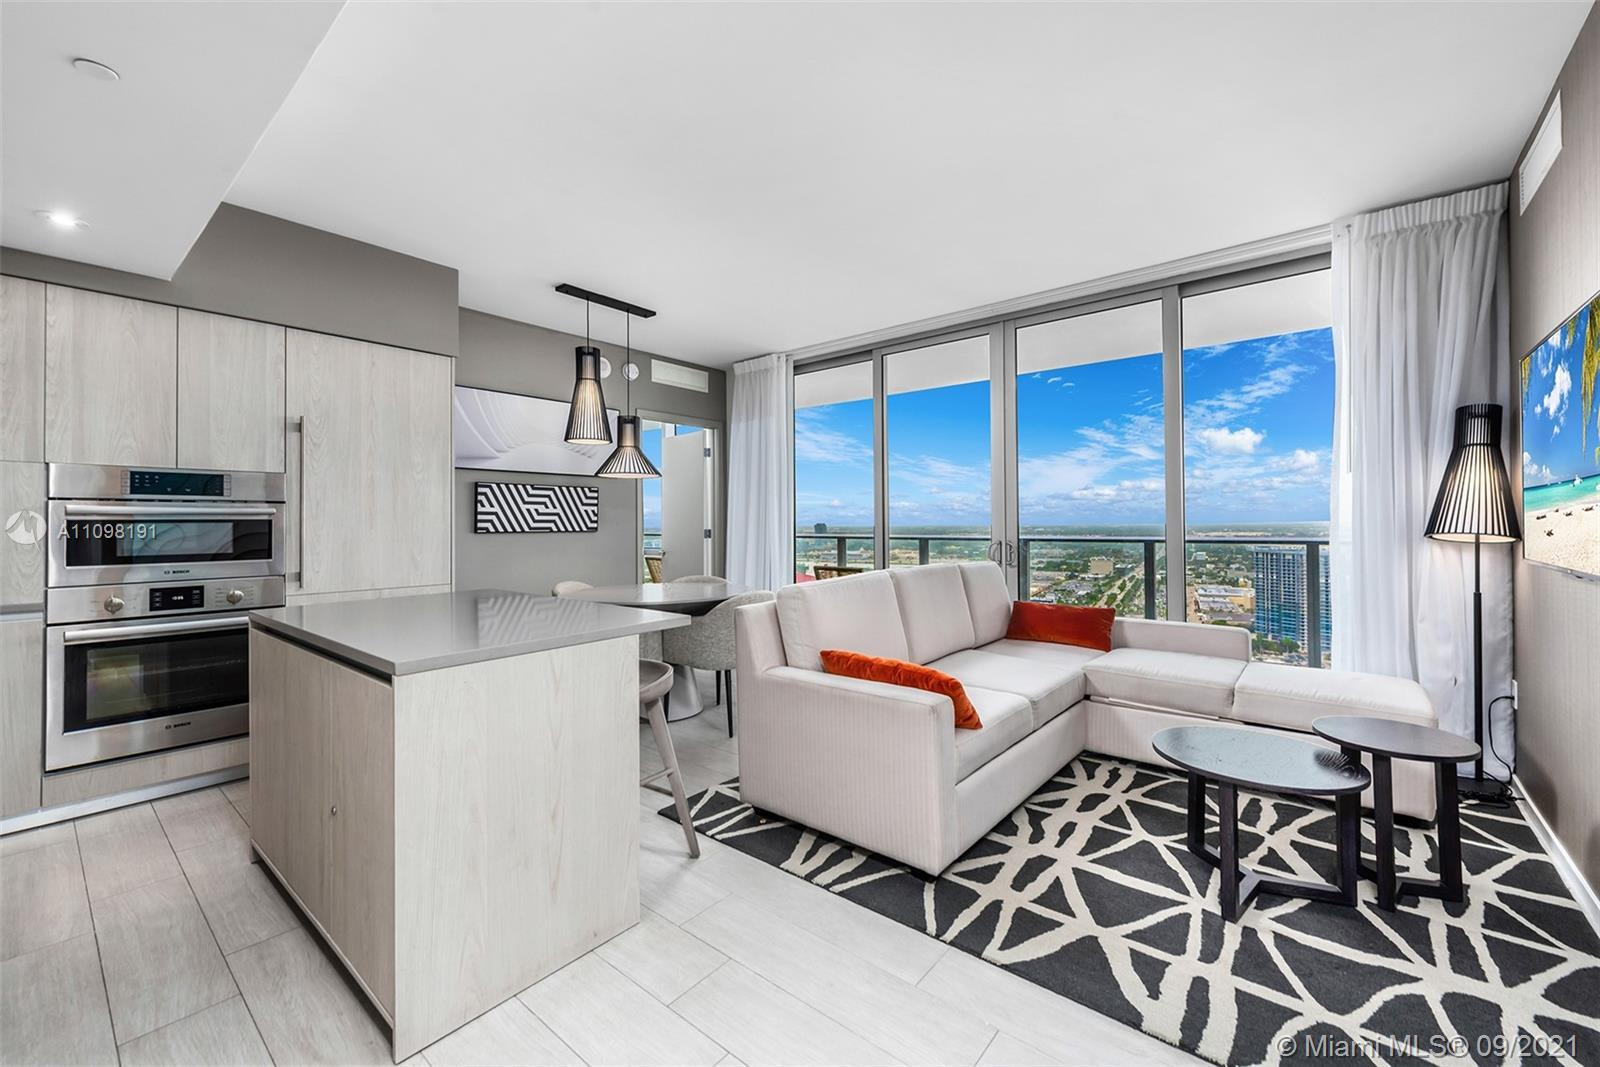 MODERN BRAND-NEW APARTMENT FACING THE CANAL. HYDE BEACH HOUSE OFFERS 5 STARS RESIDENCES AND RESORT-S